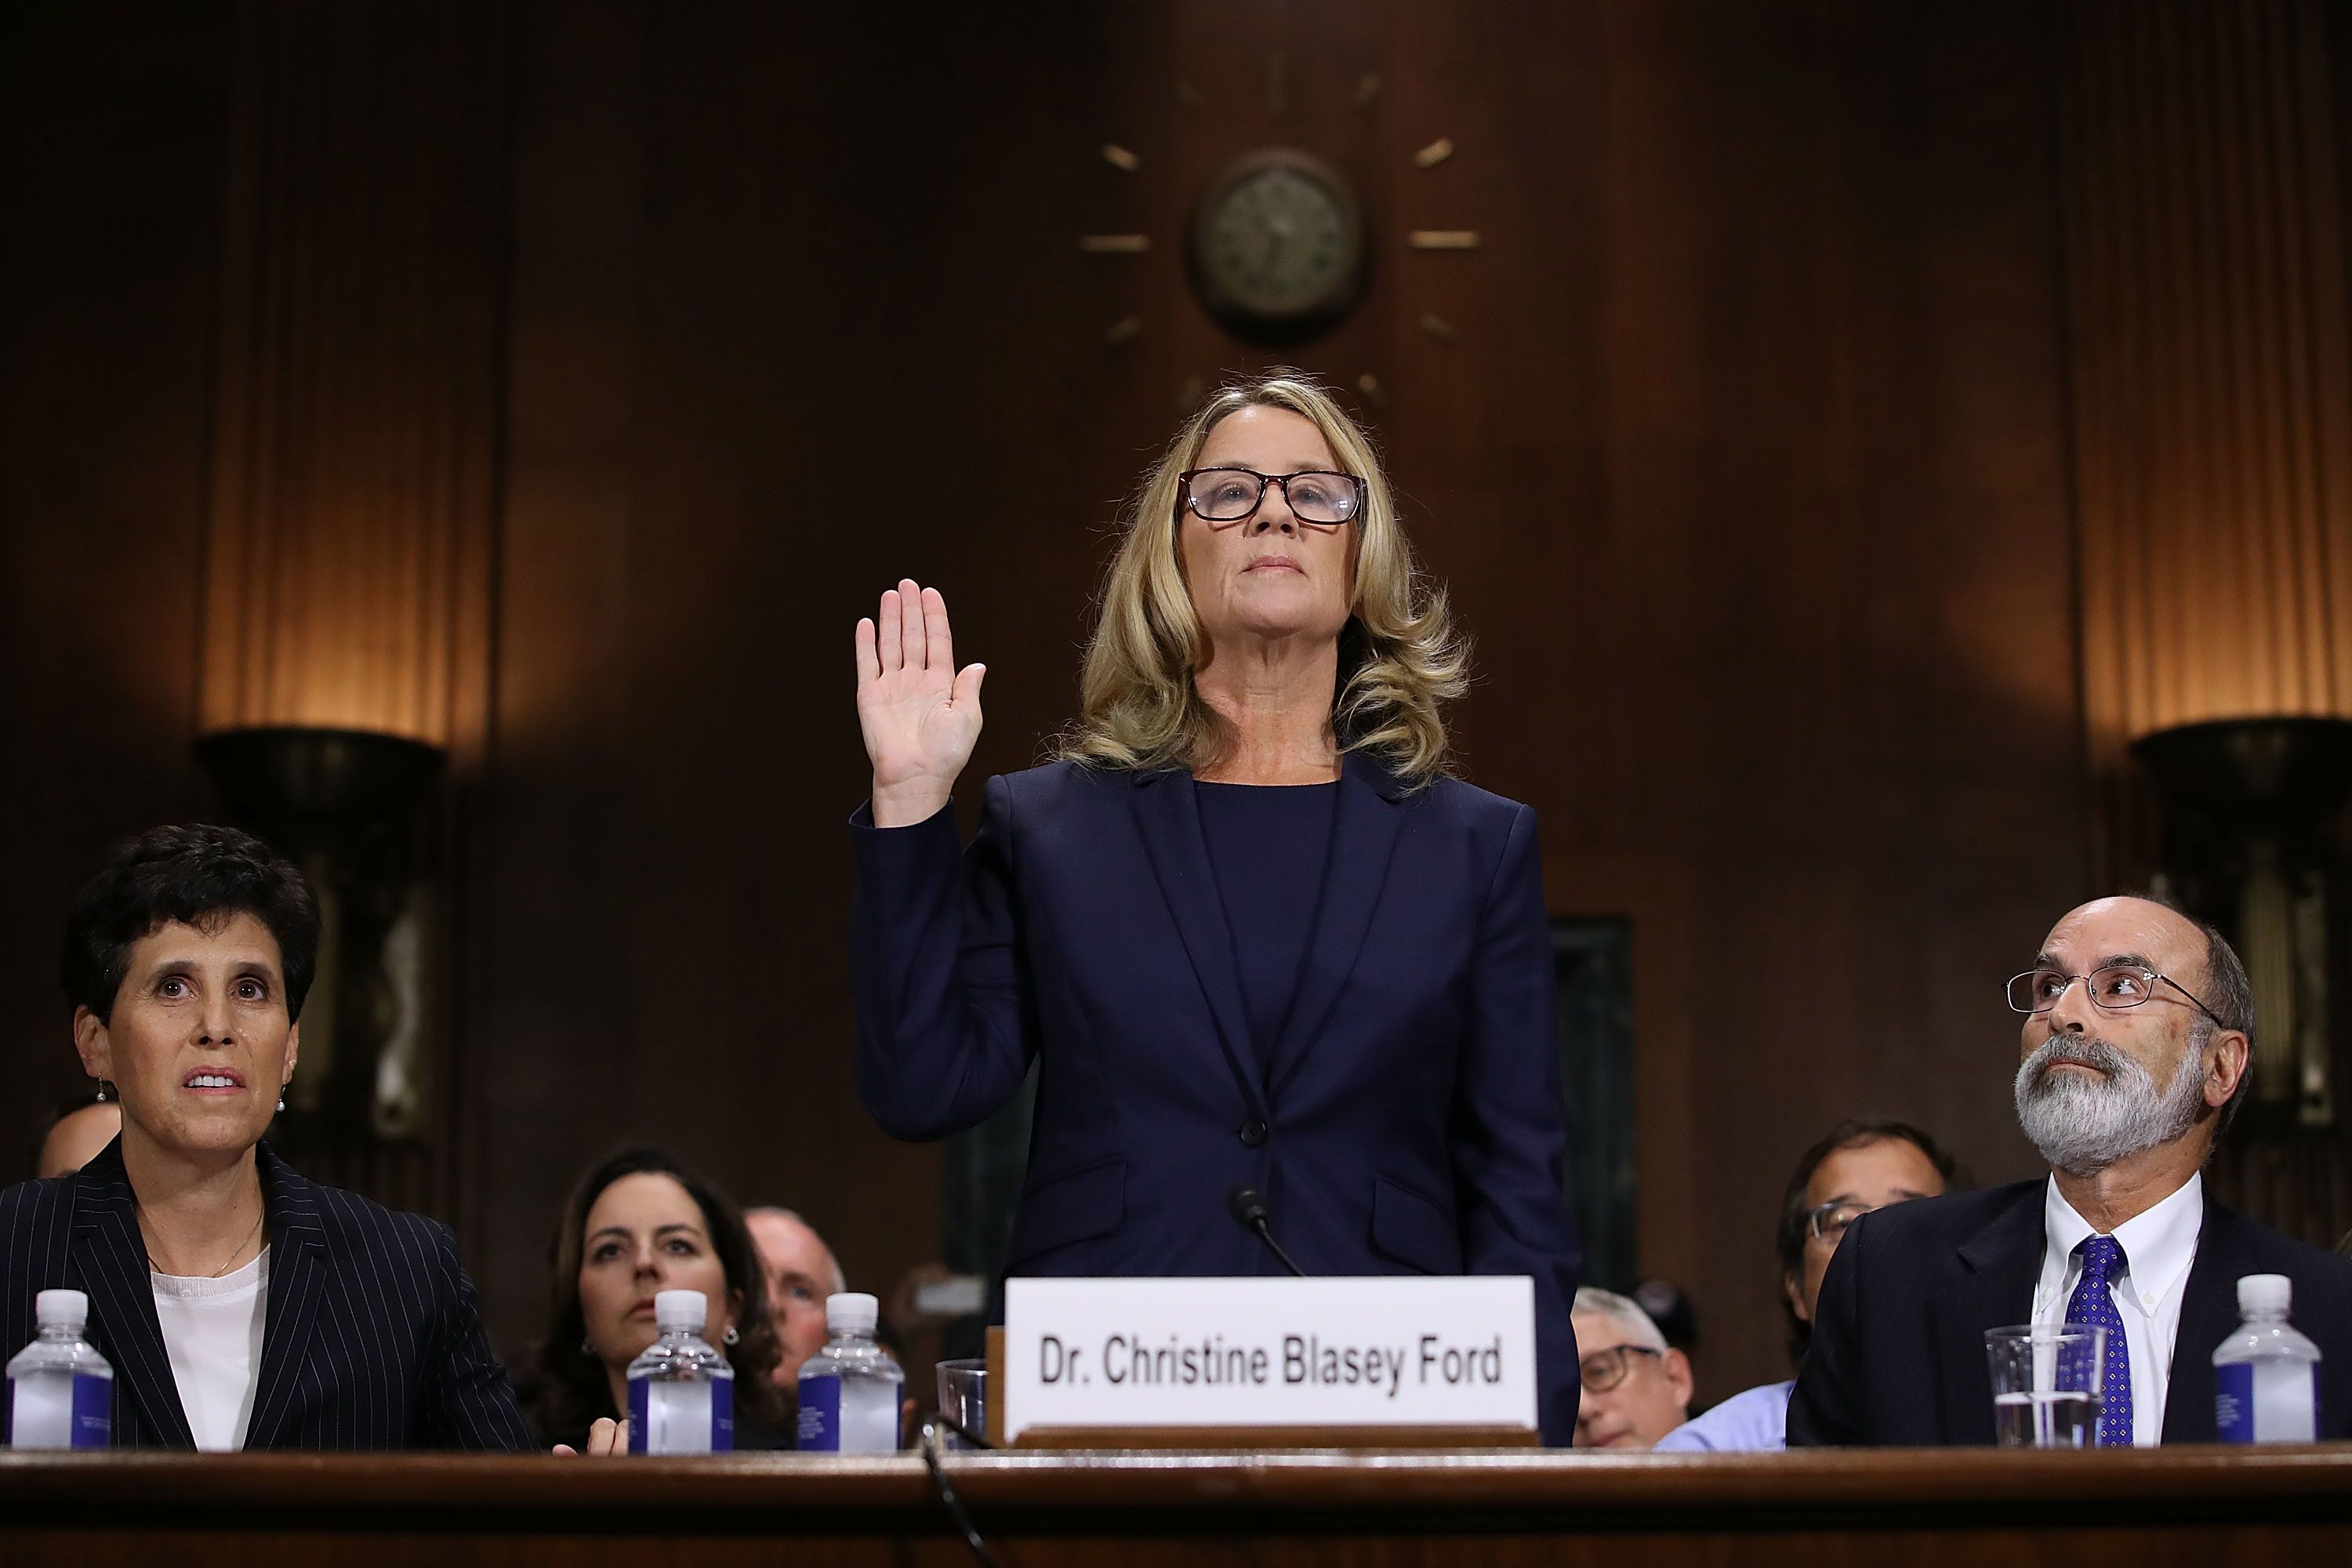 There Were Zero Things Better This Week Than The Historic Image Of Blasey Ford